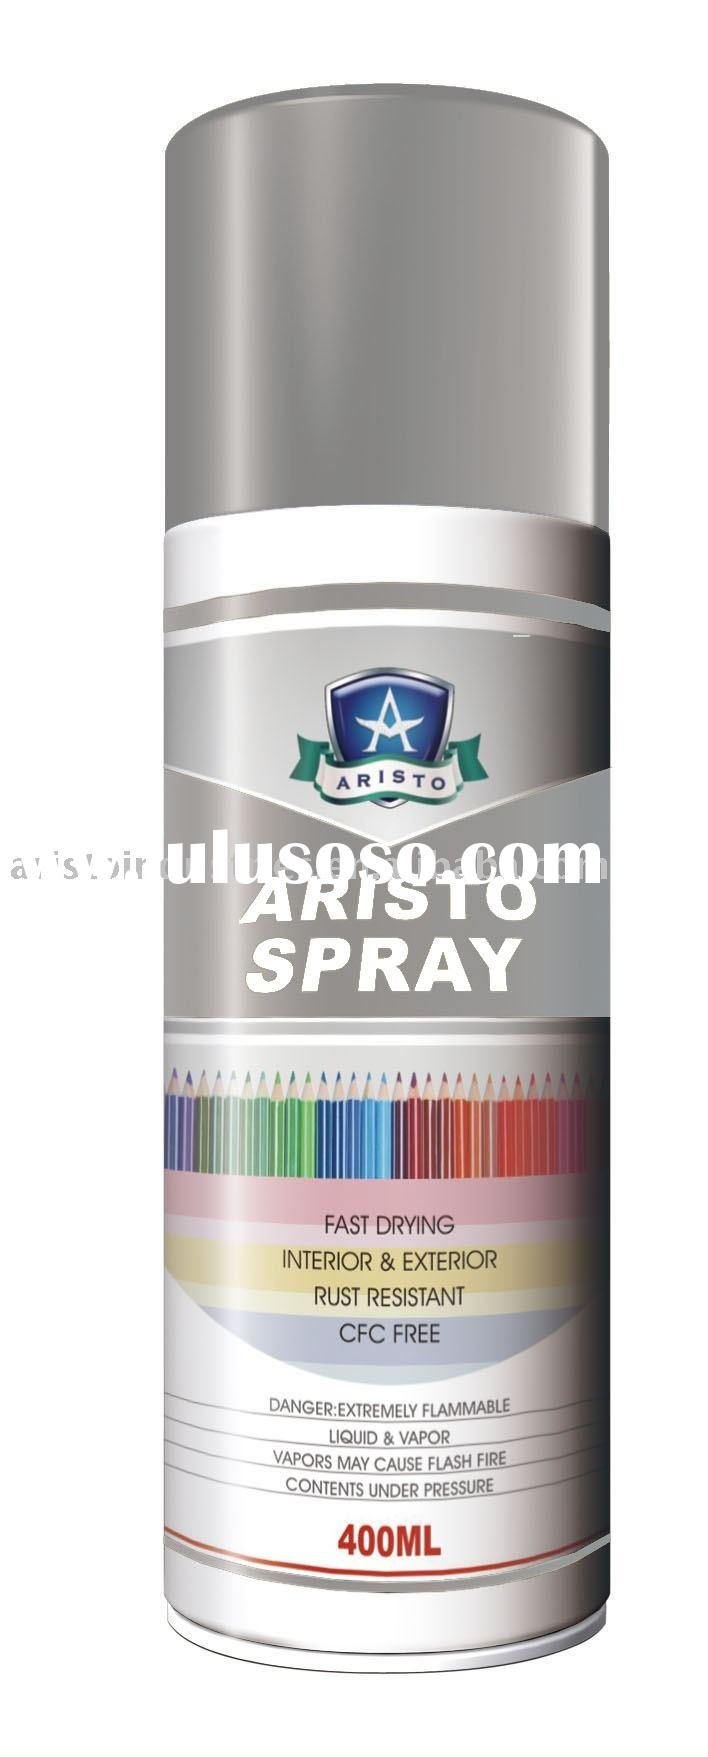 High Heat Resistant Spray Paint For Sale Price China Manufacturer Supplier 946106